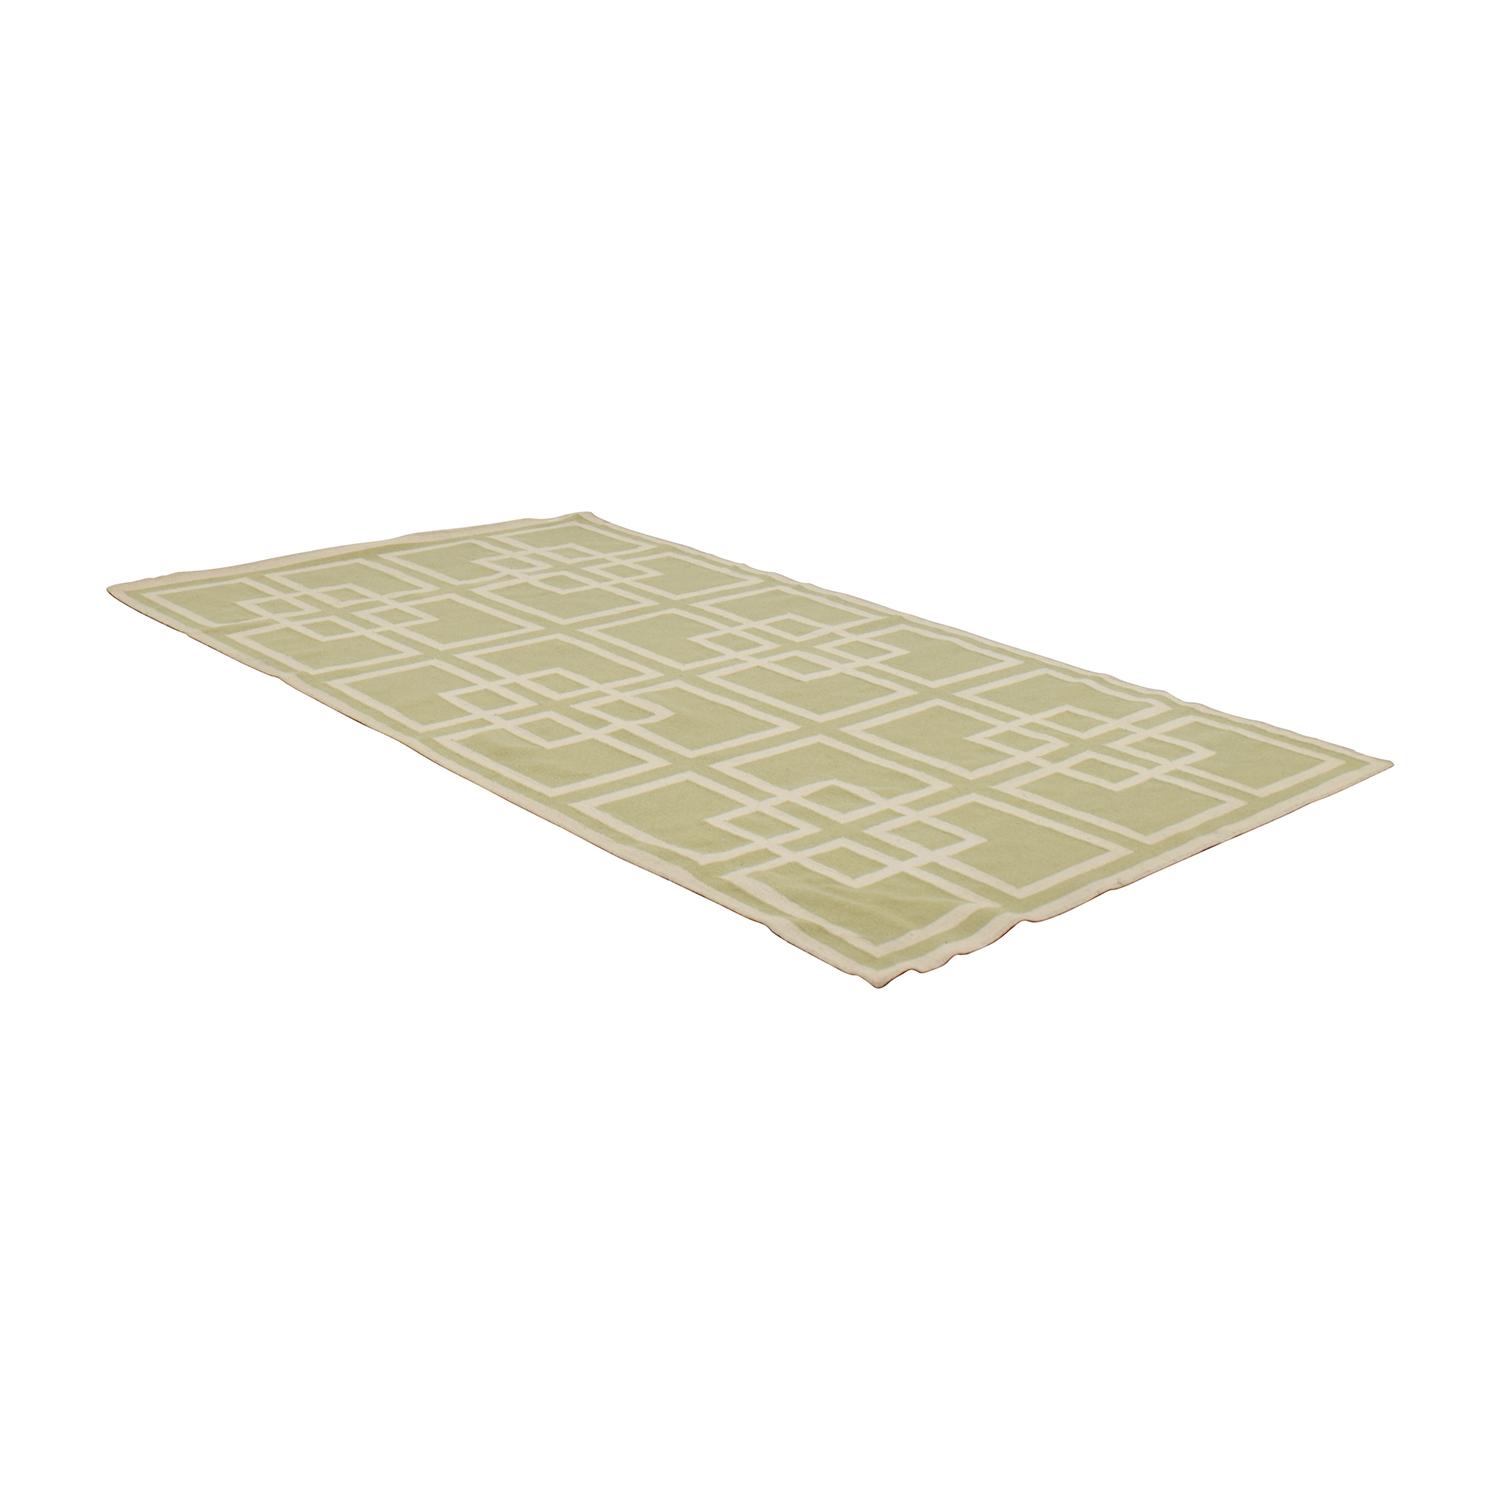 Pottery Barn Green and White Rug / Decor